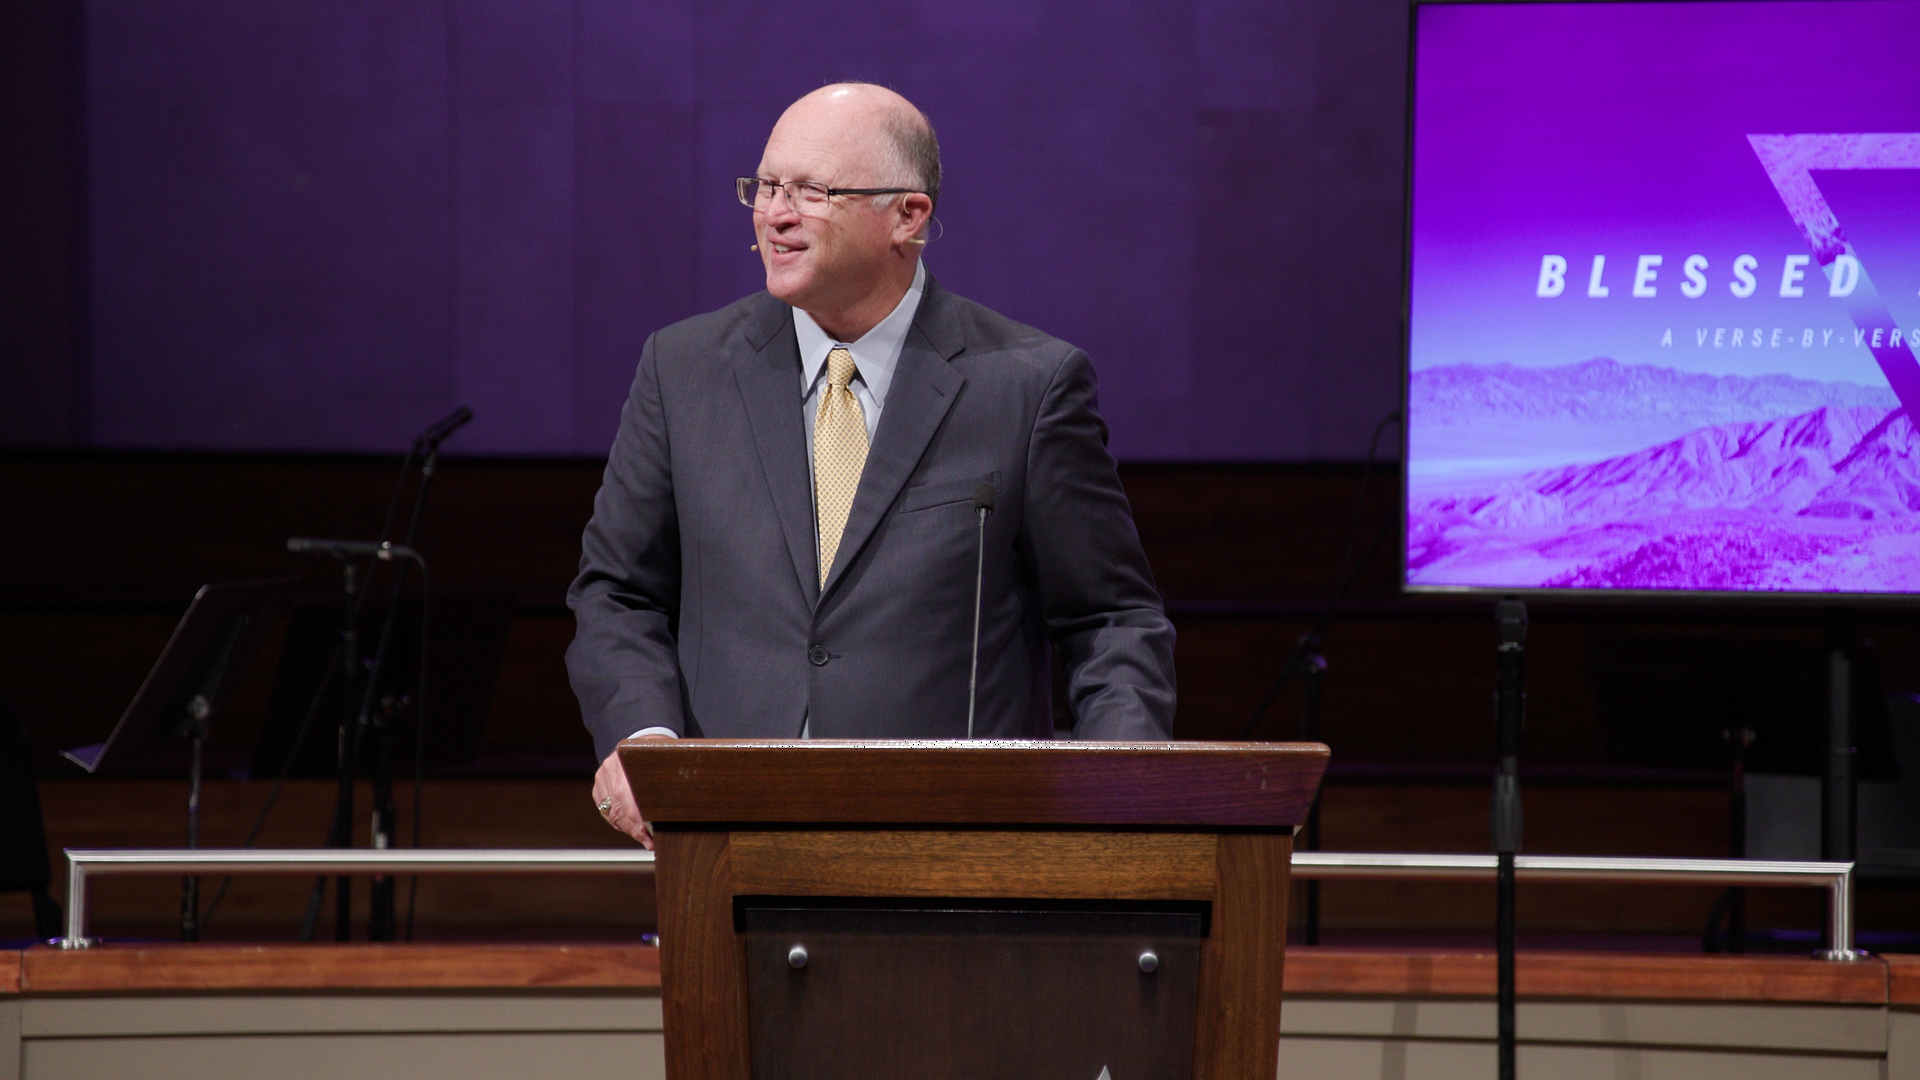 Pastor Paul Chappell: Experience the Assurance of Christ